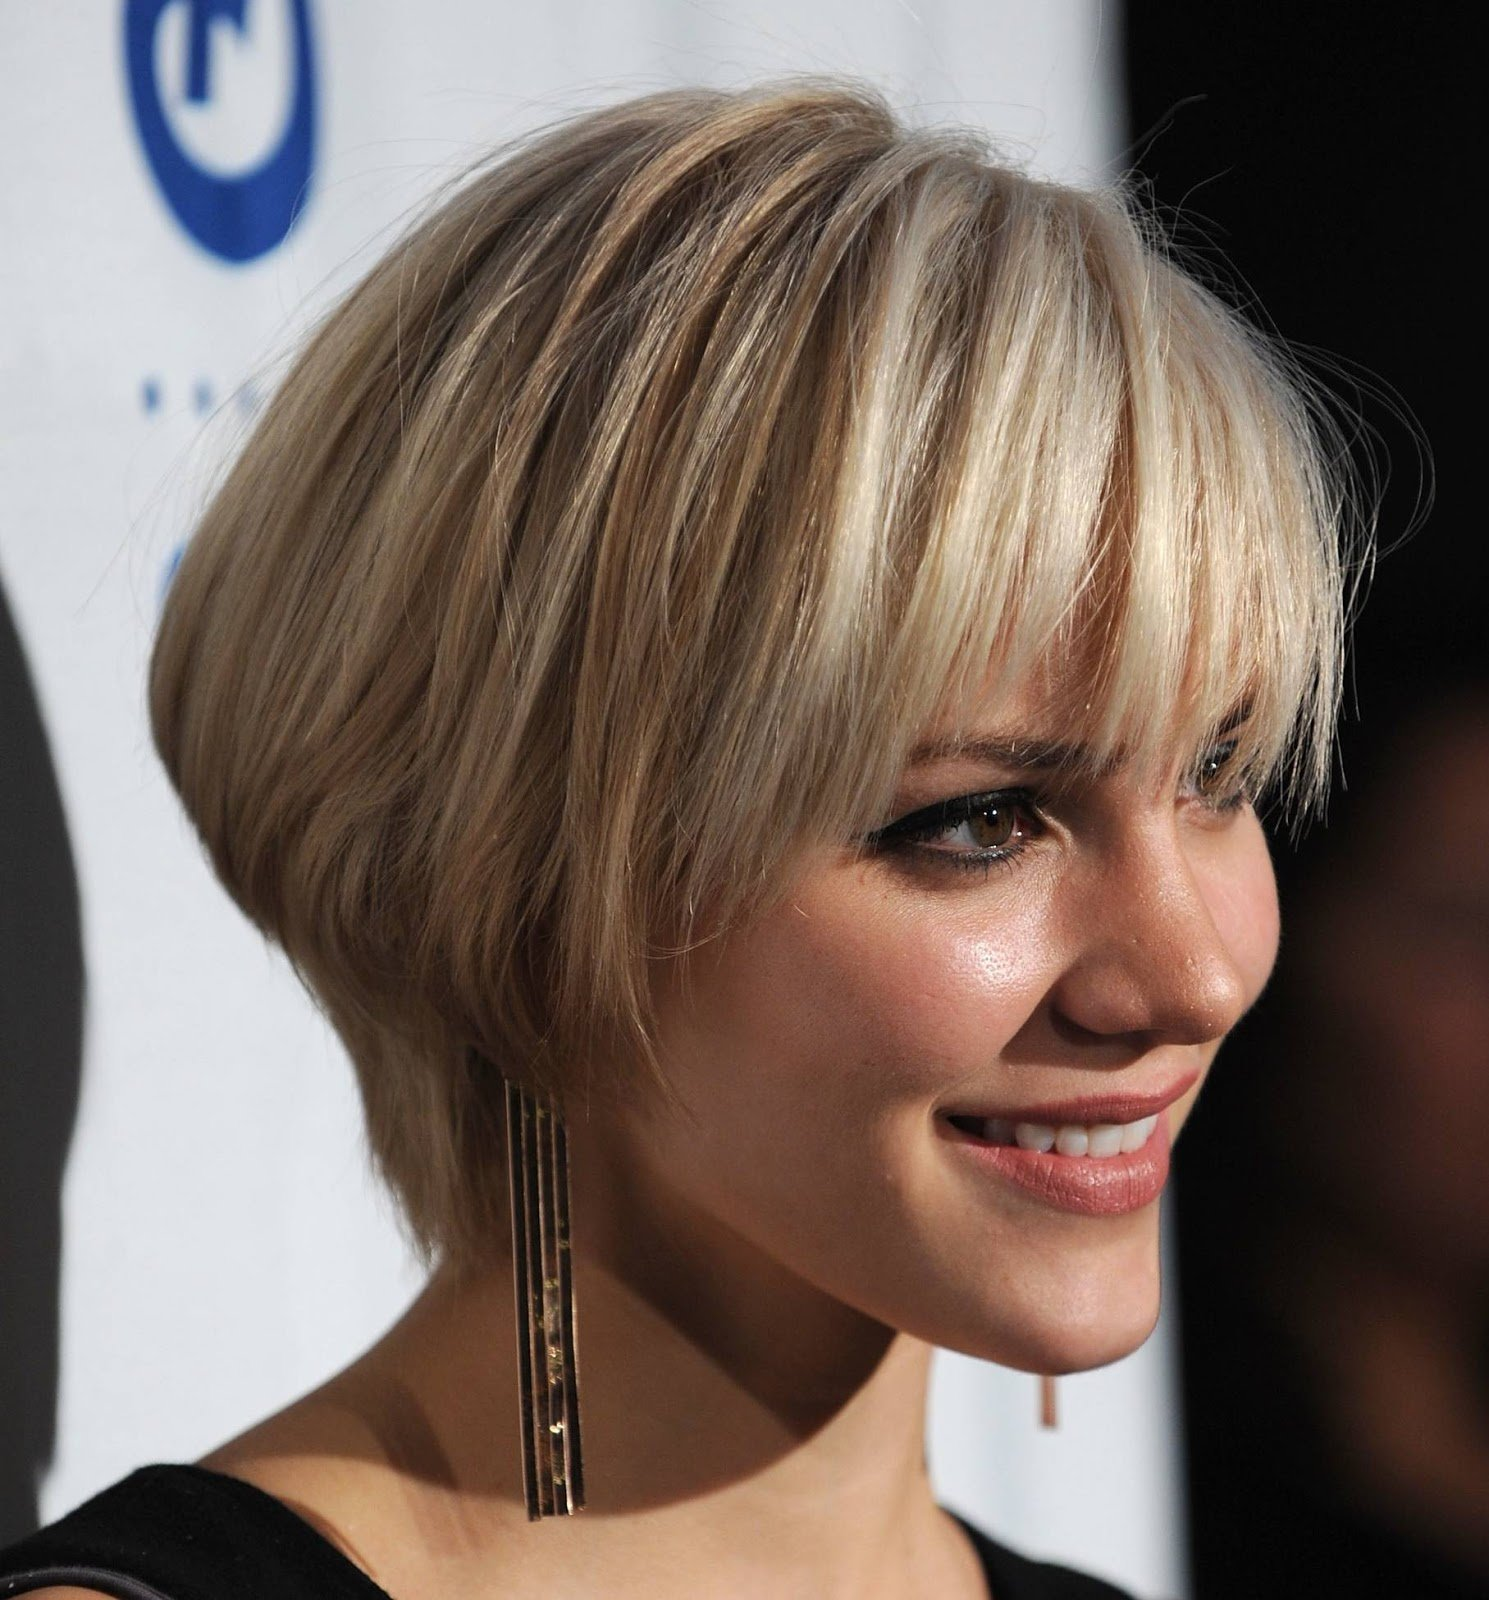 The Best Bob Cut Hairstyles 2012 The Collectioner Pictures